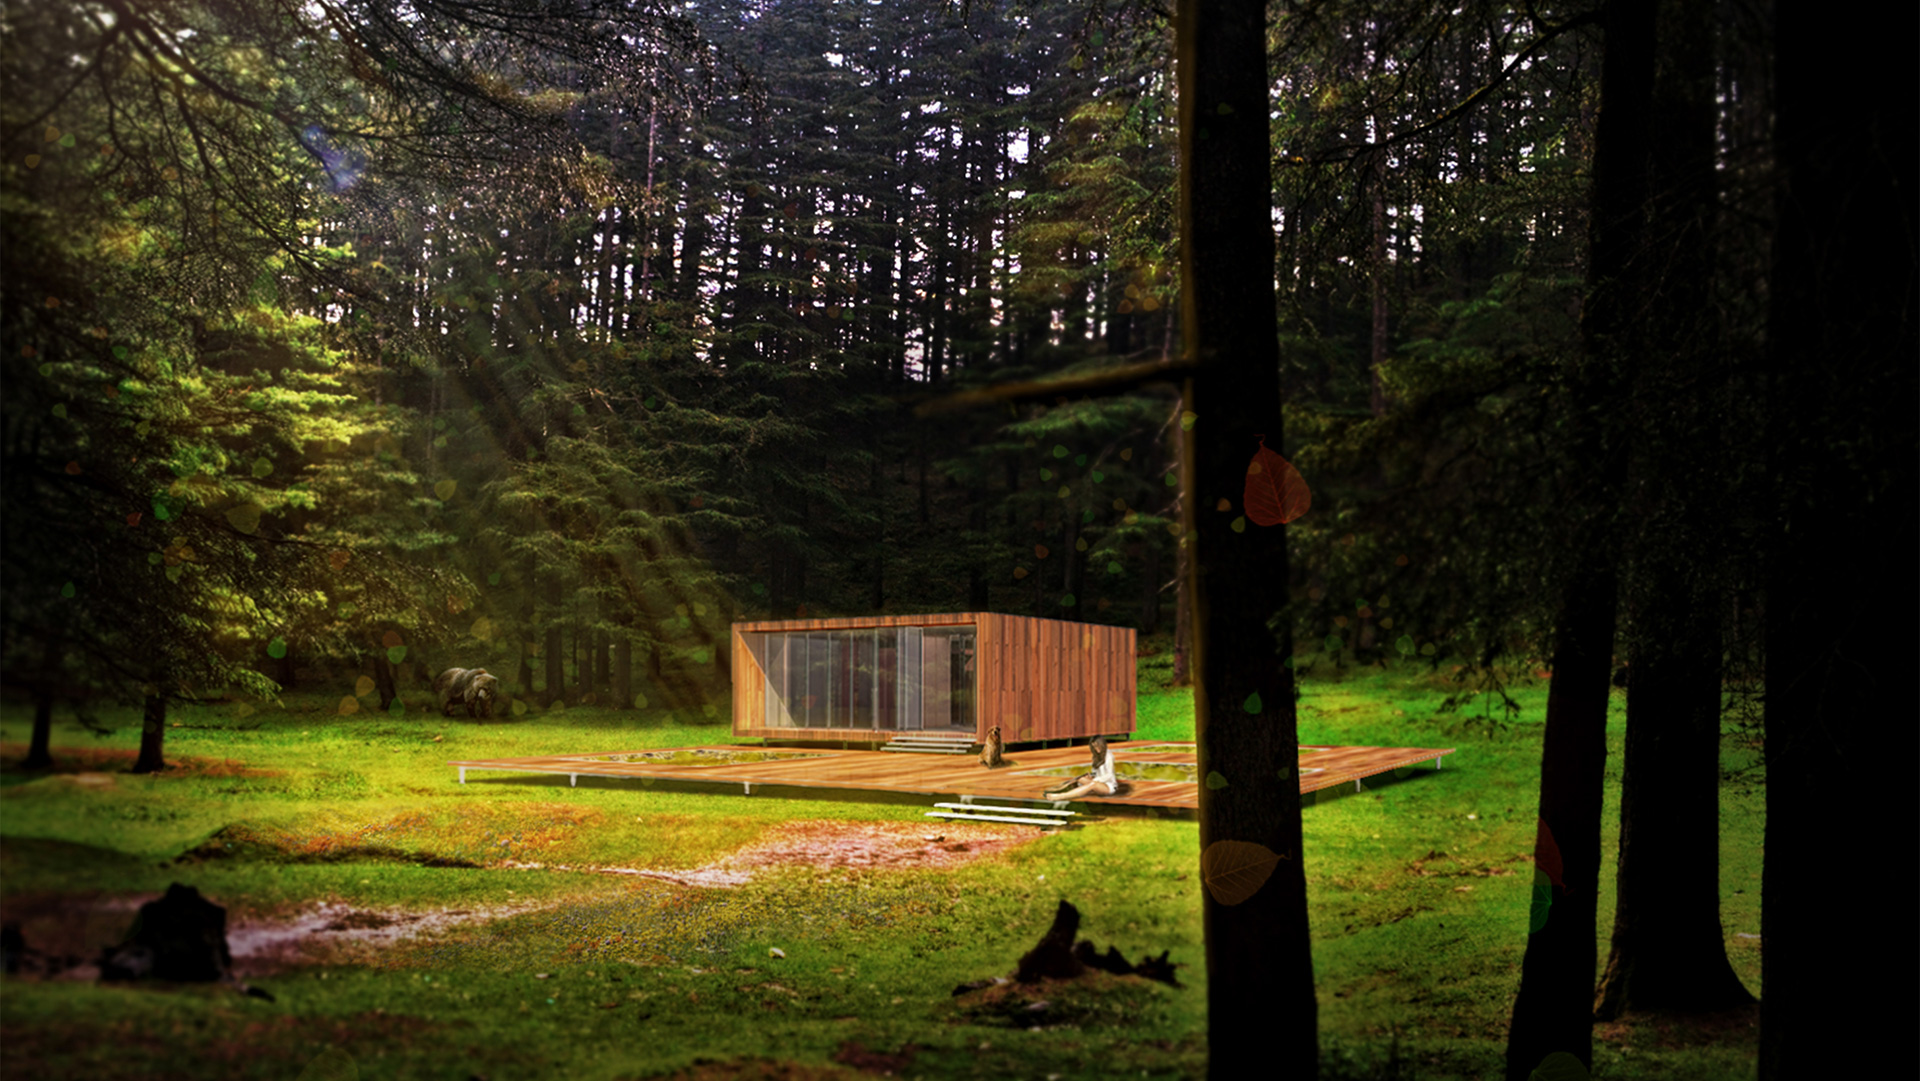 Shelter in the forest designed by Rodrigo A. Santoveña